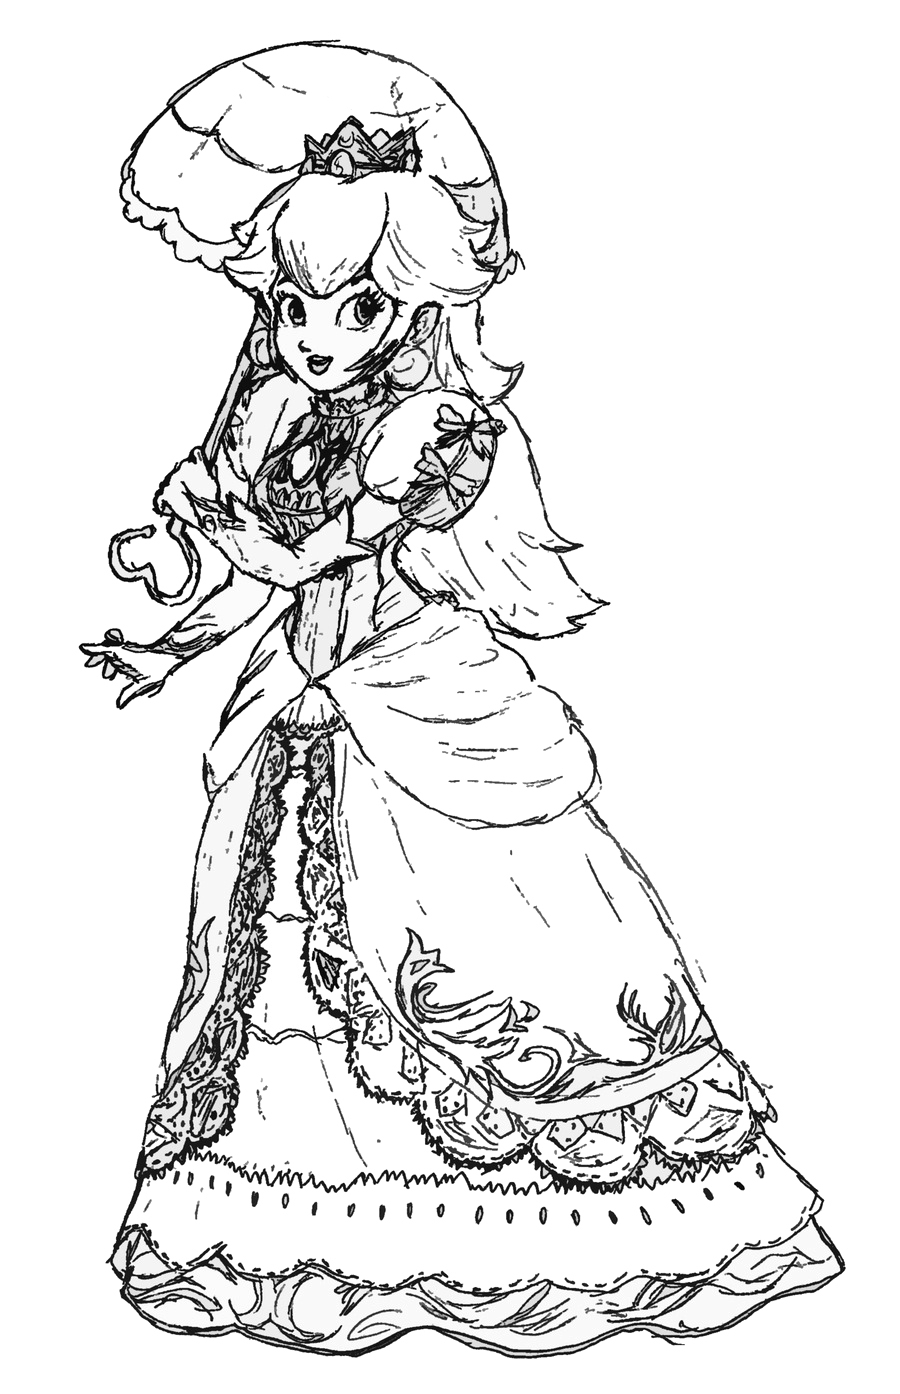 Peach From Mario Coloring Pages Free Princess Peach Coloring Pages For Kids